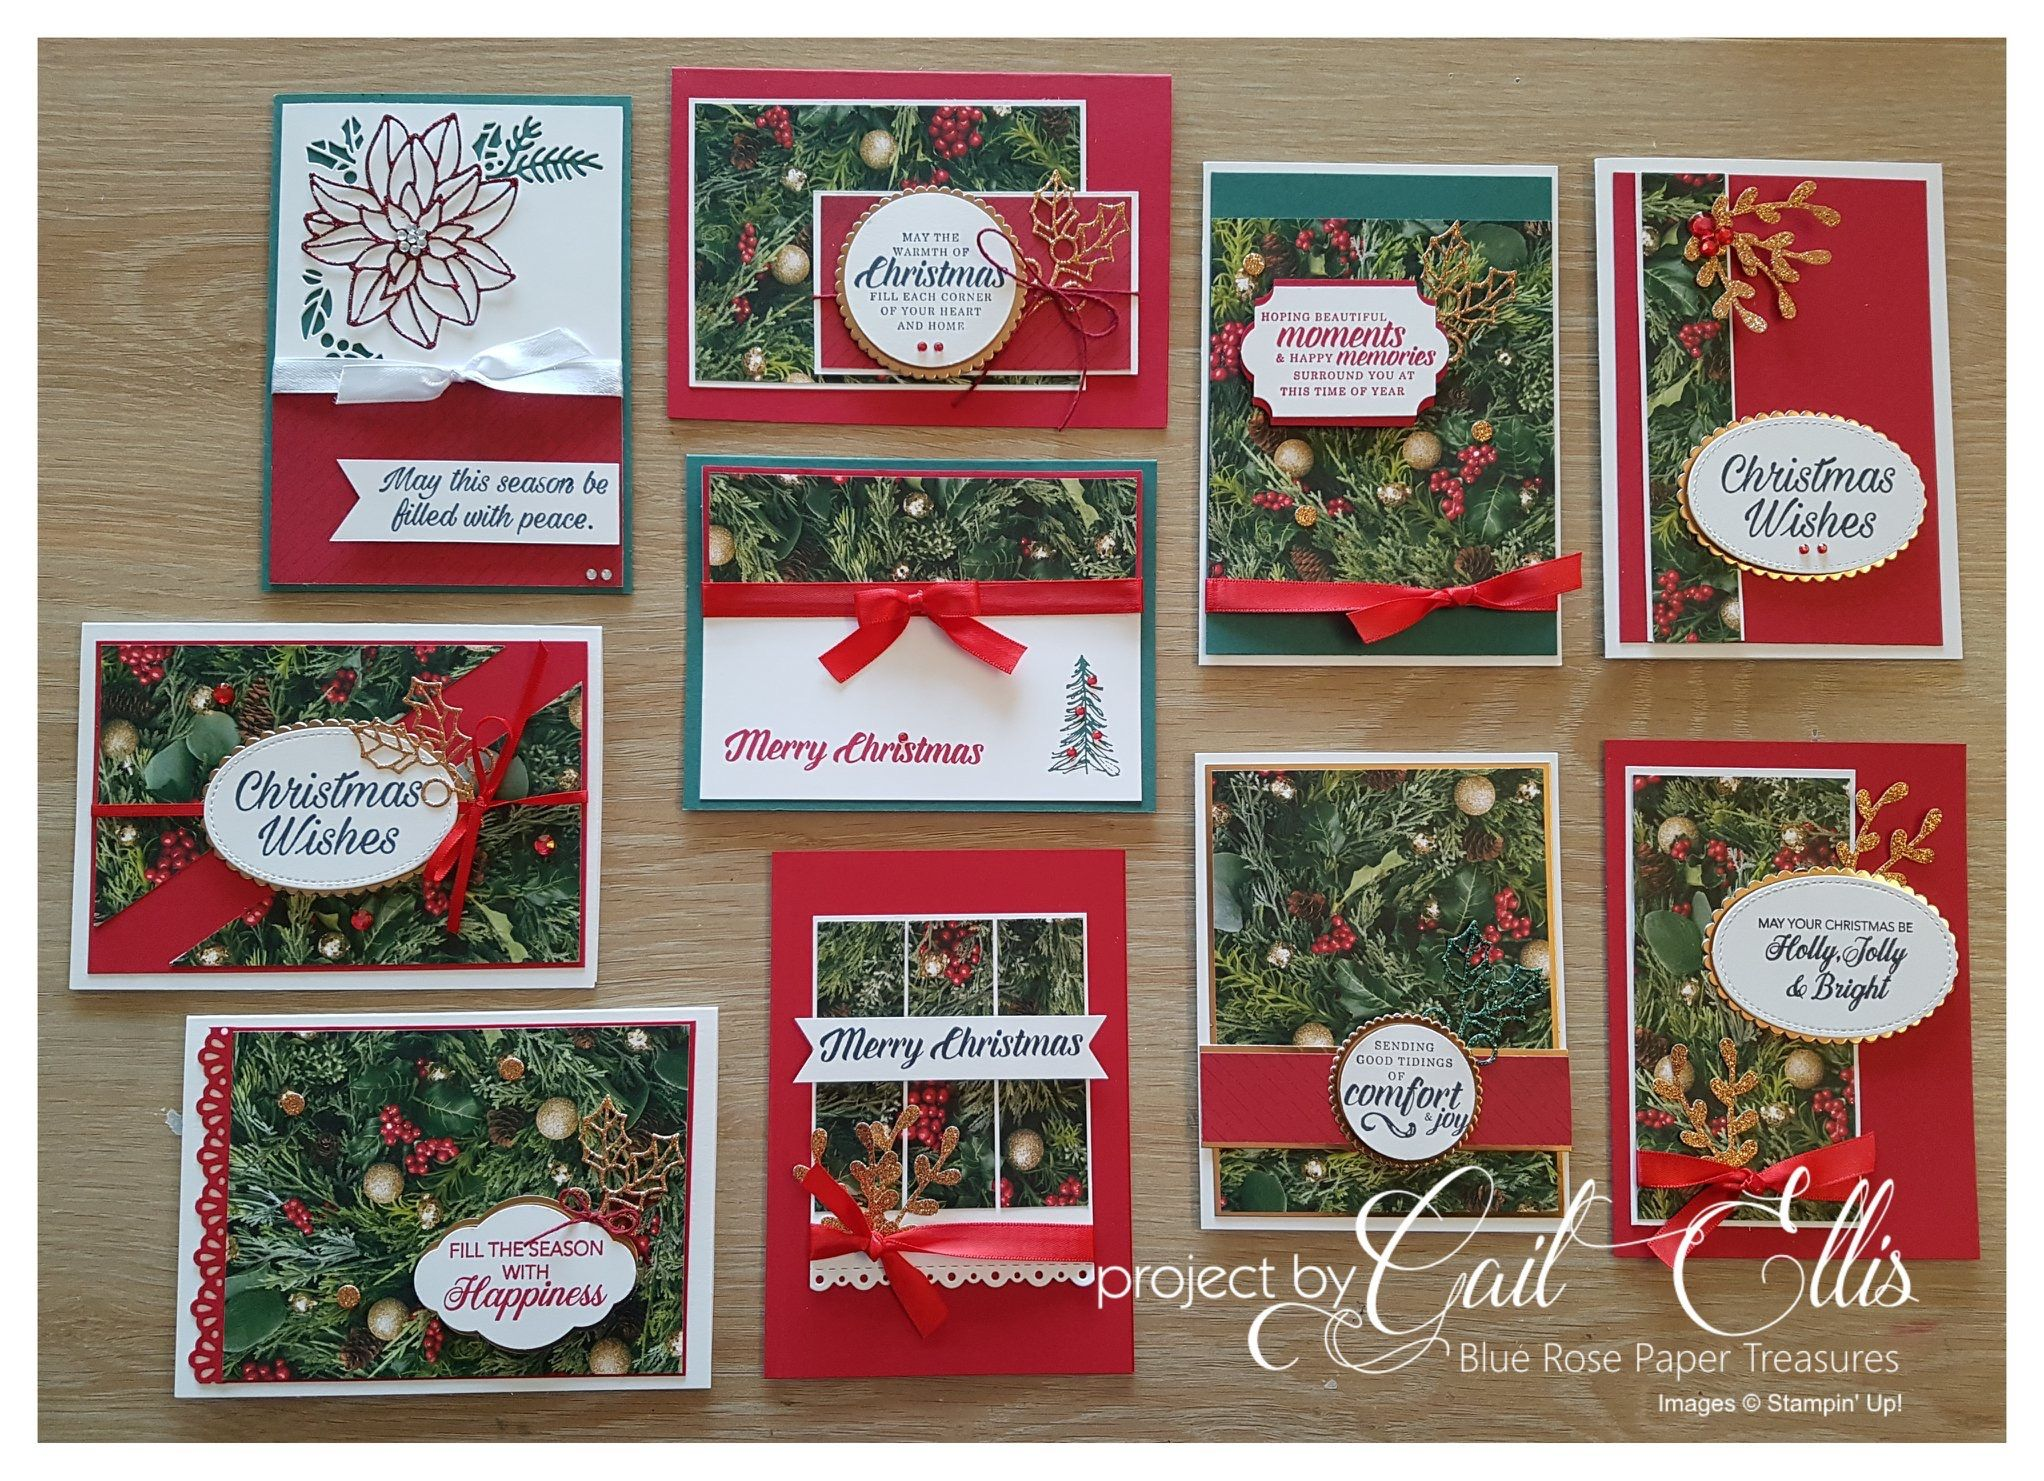 Pin by Arlene Sweigart on Stampin Pinterest